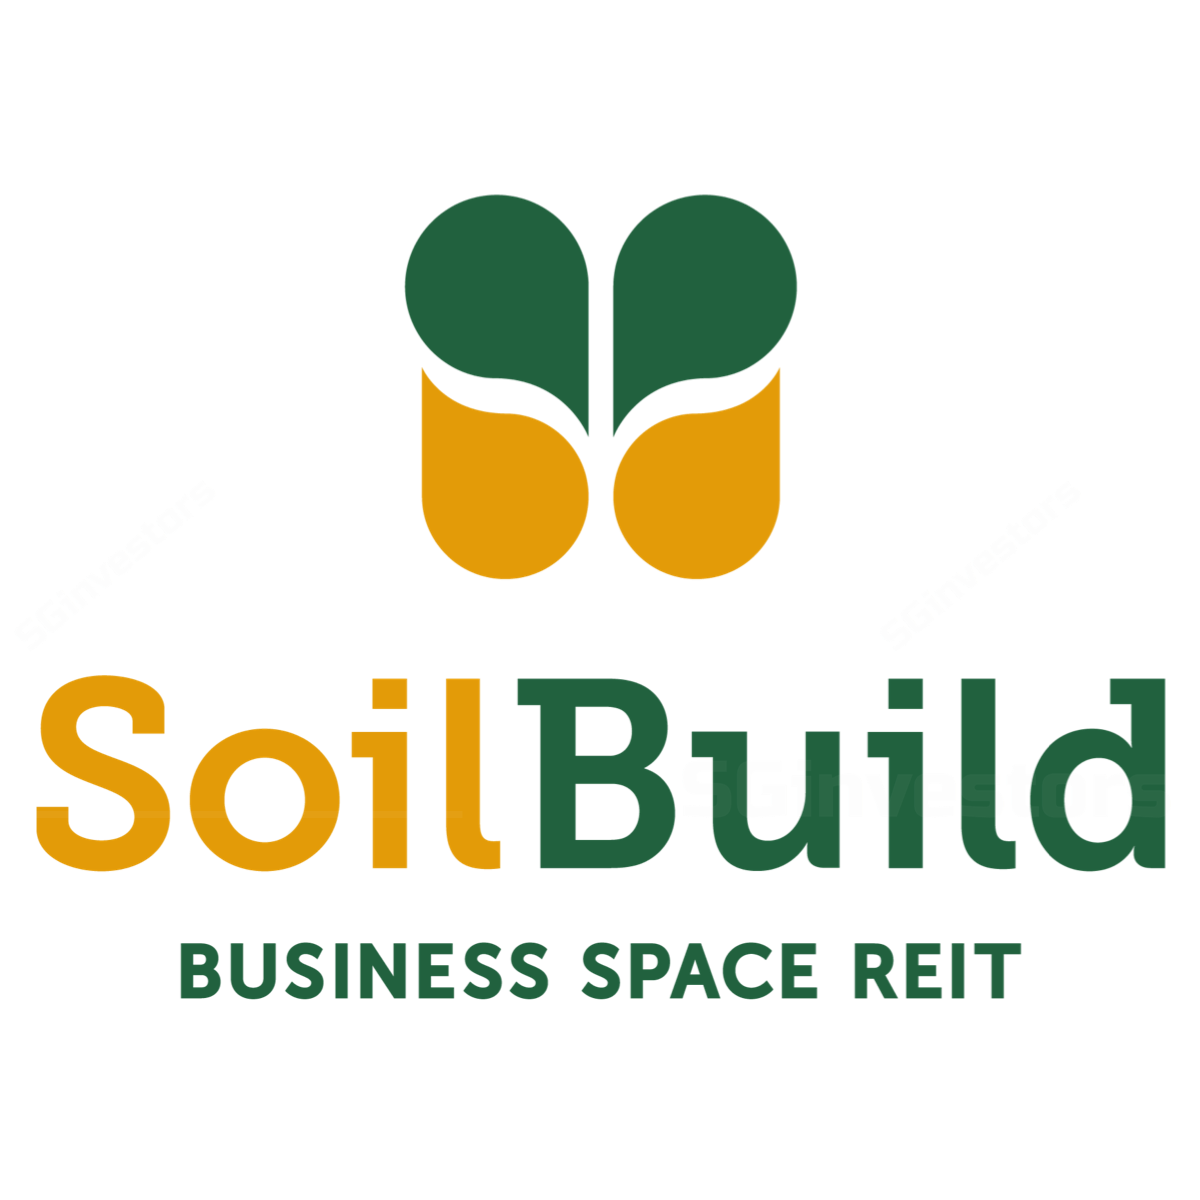 Soilbuild Business Space Reit - DBS Vickers 2017-10-17: More Challenges Looming